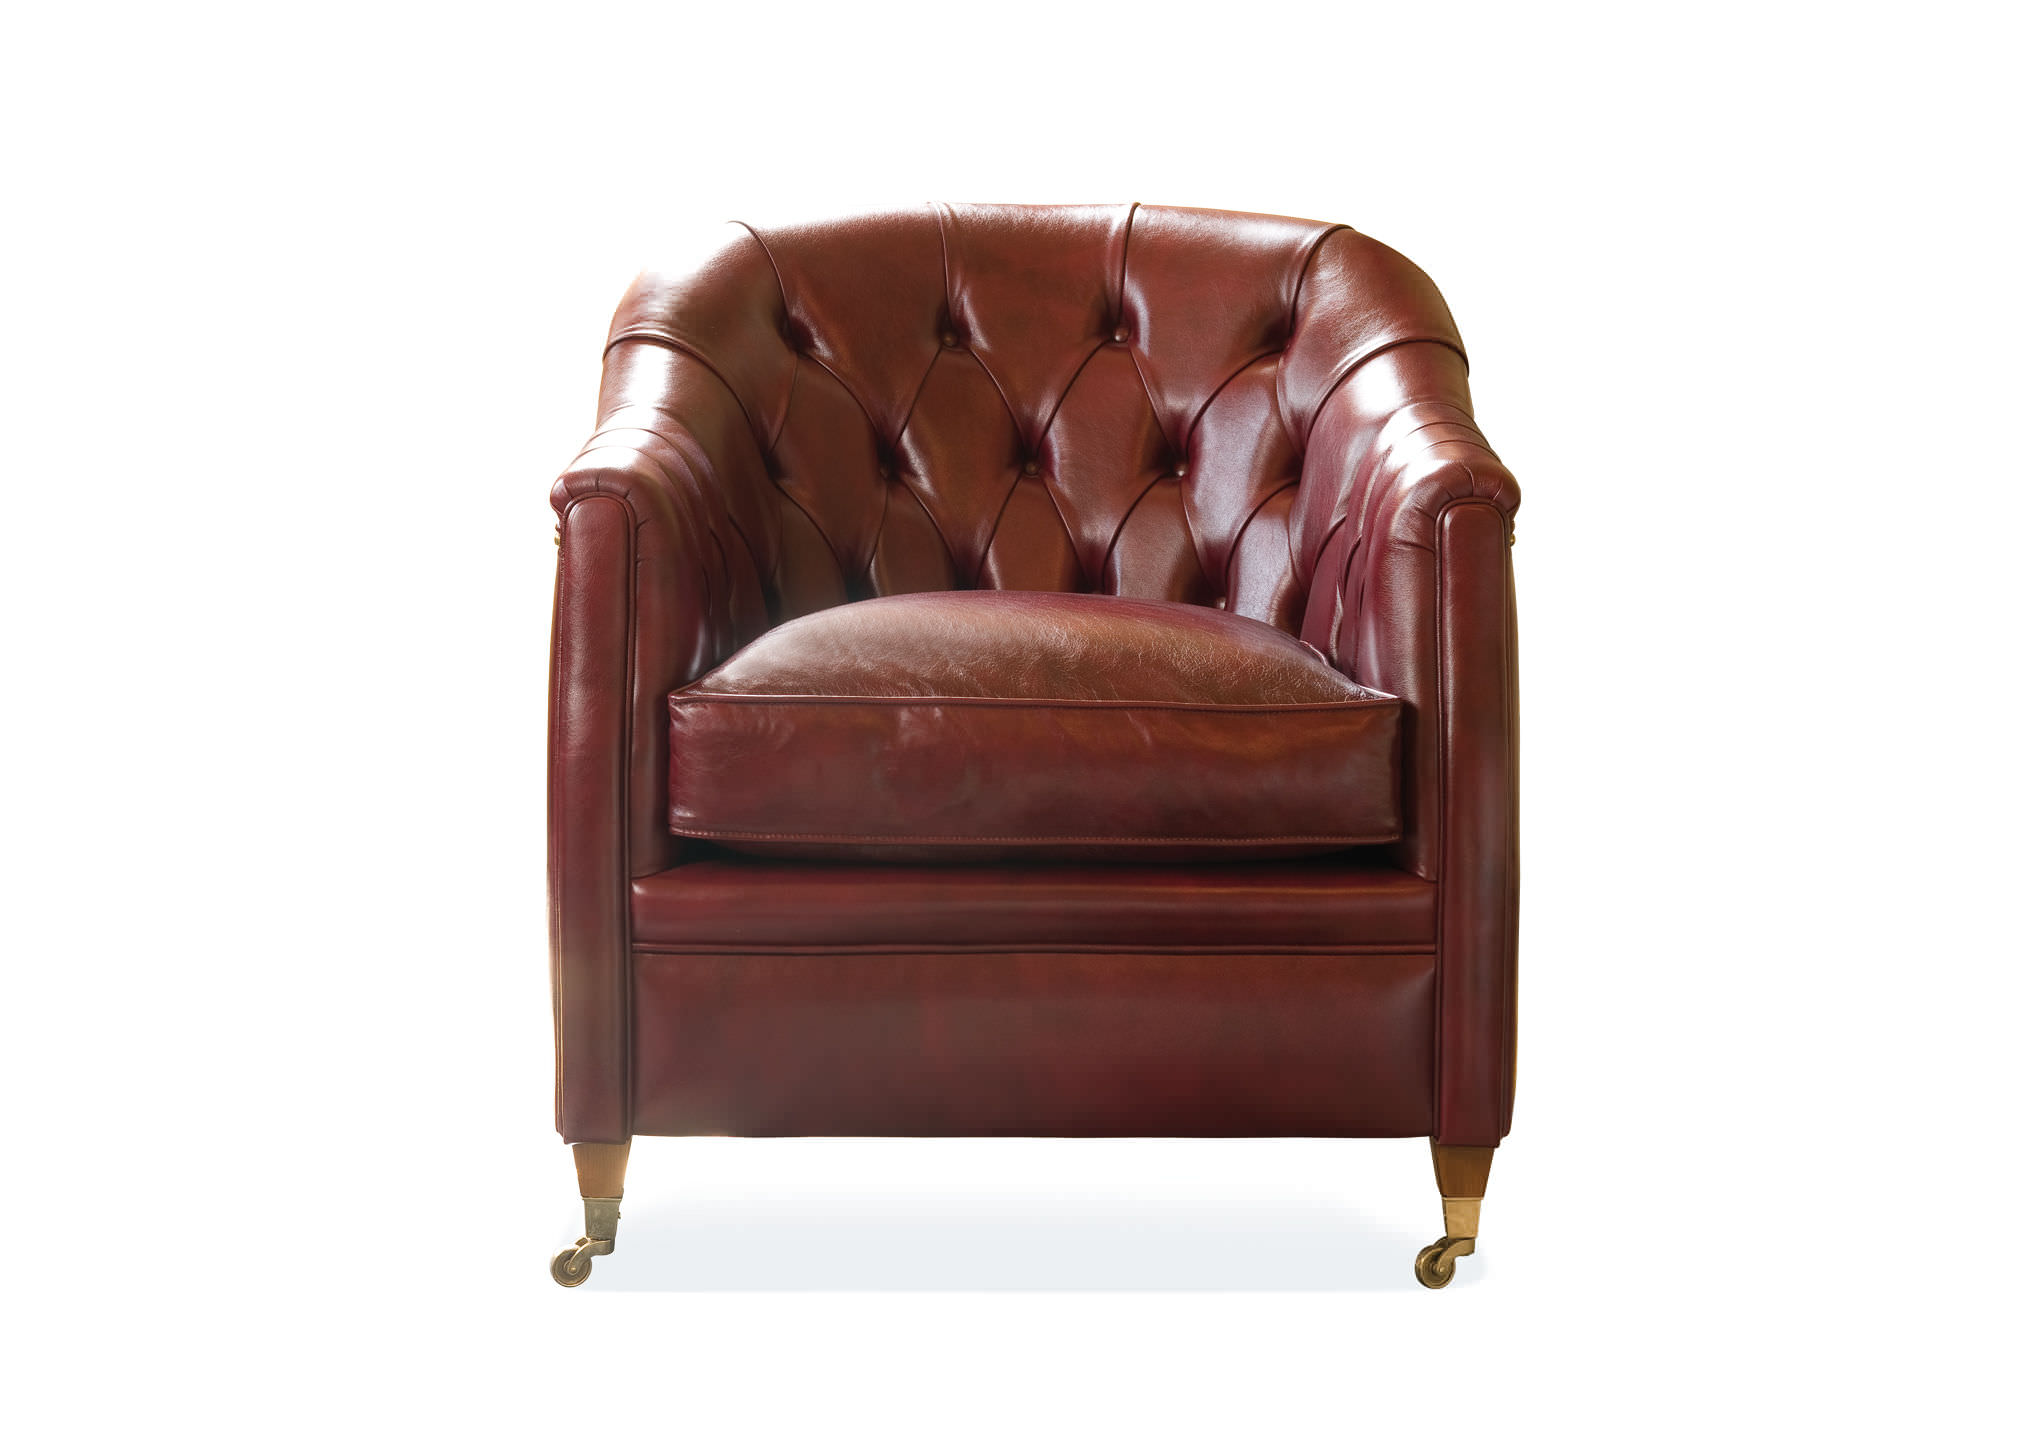 ... Chesterfield Armchair / Fabric / Leather / On Casters